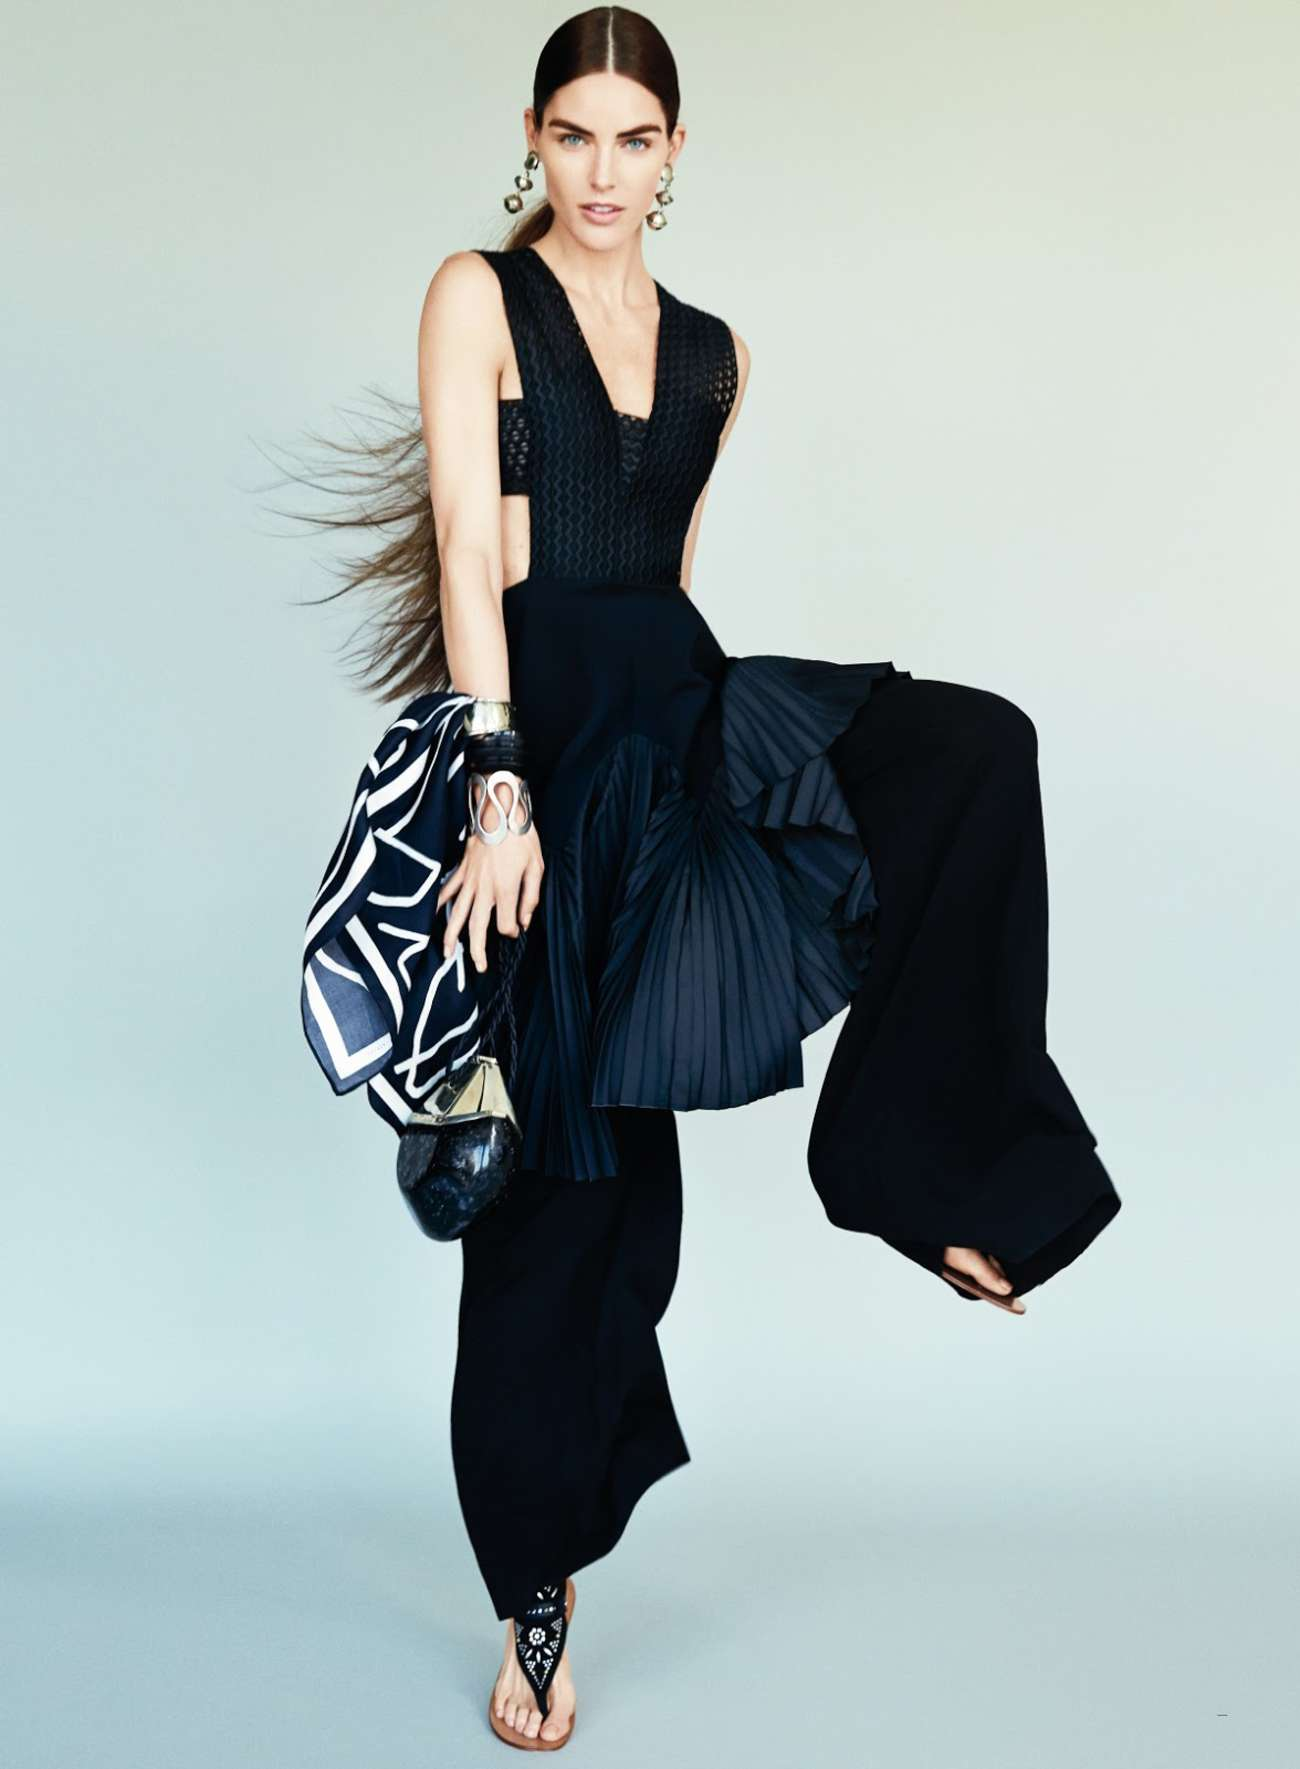 Hilary Rhoda 'Black White Chic all over' Photoshoot for Glamour Magazine US